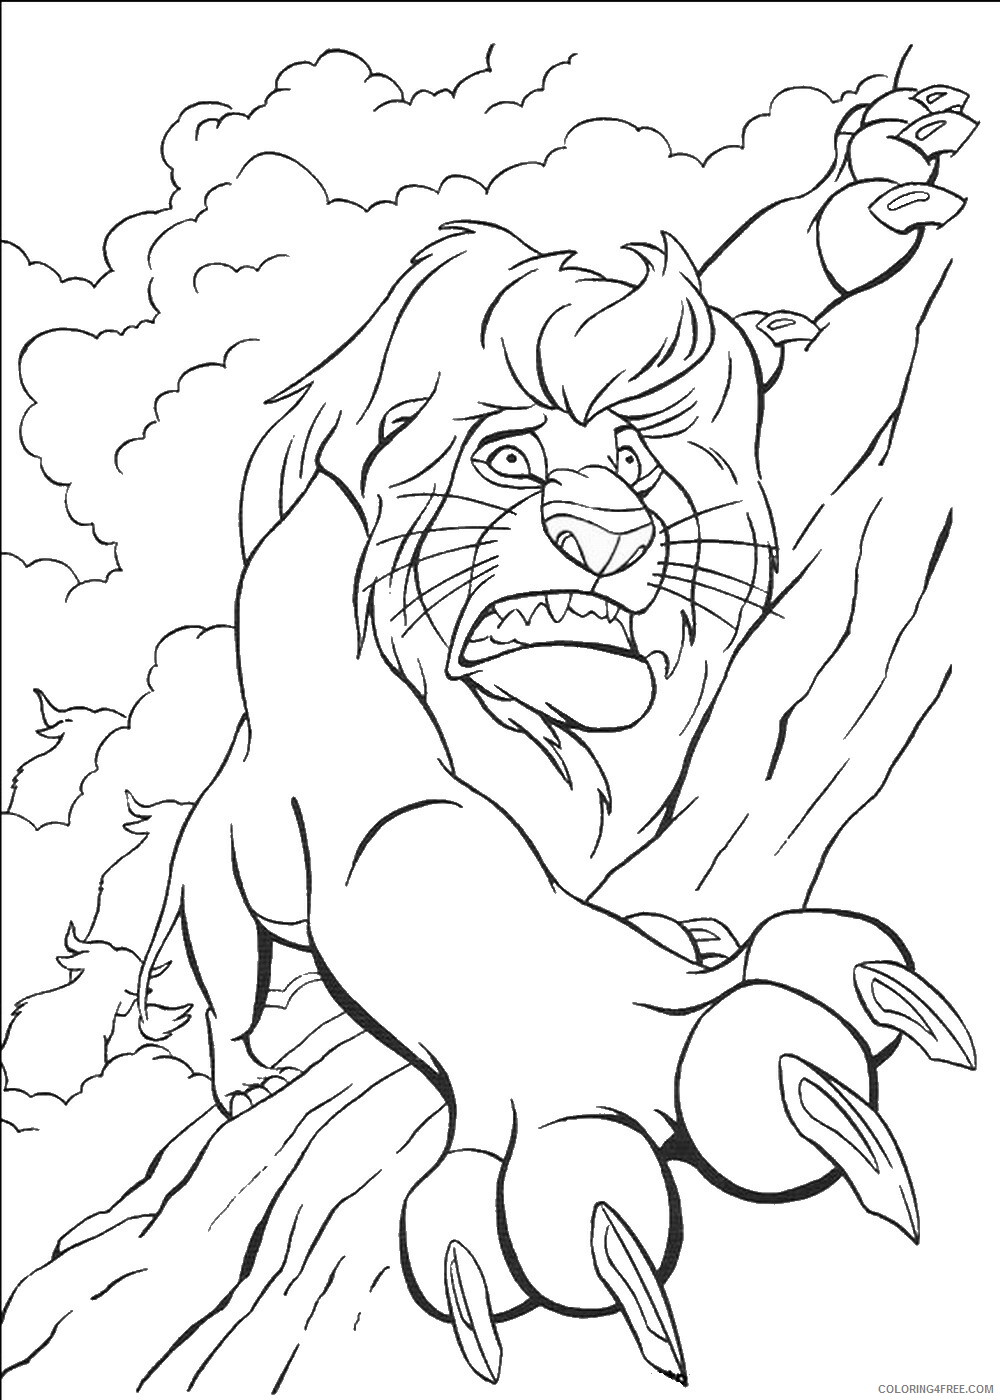 The Lion King Coloring Pages TV Film lionking_64 Printable 2020 09184 Coloring4free